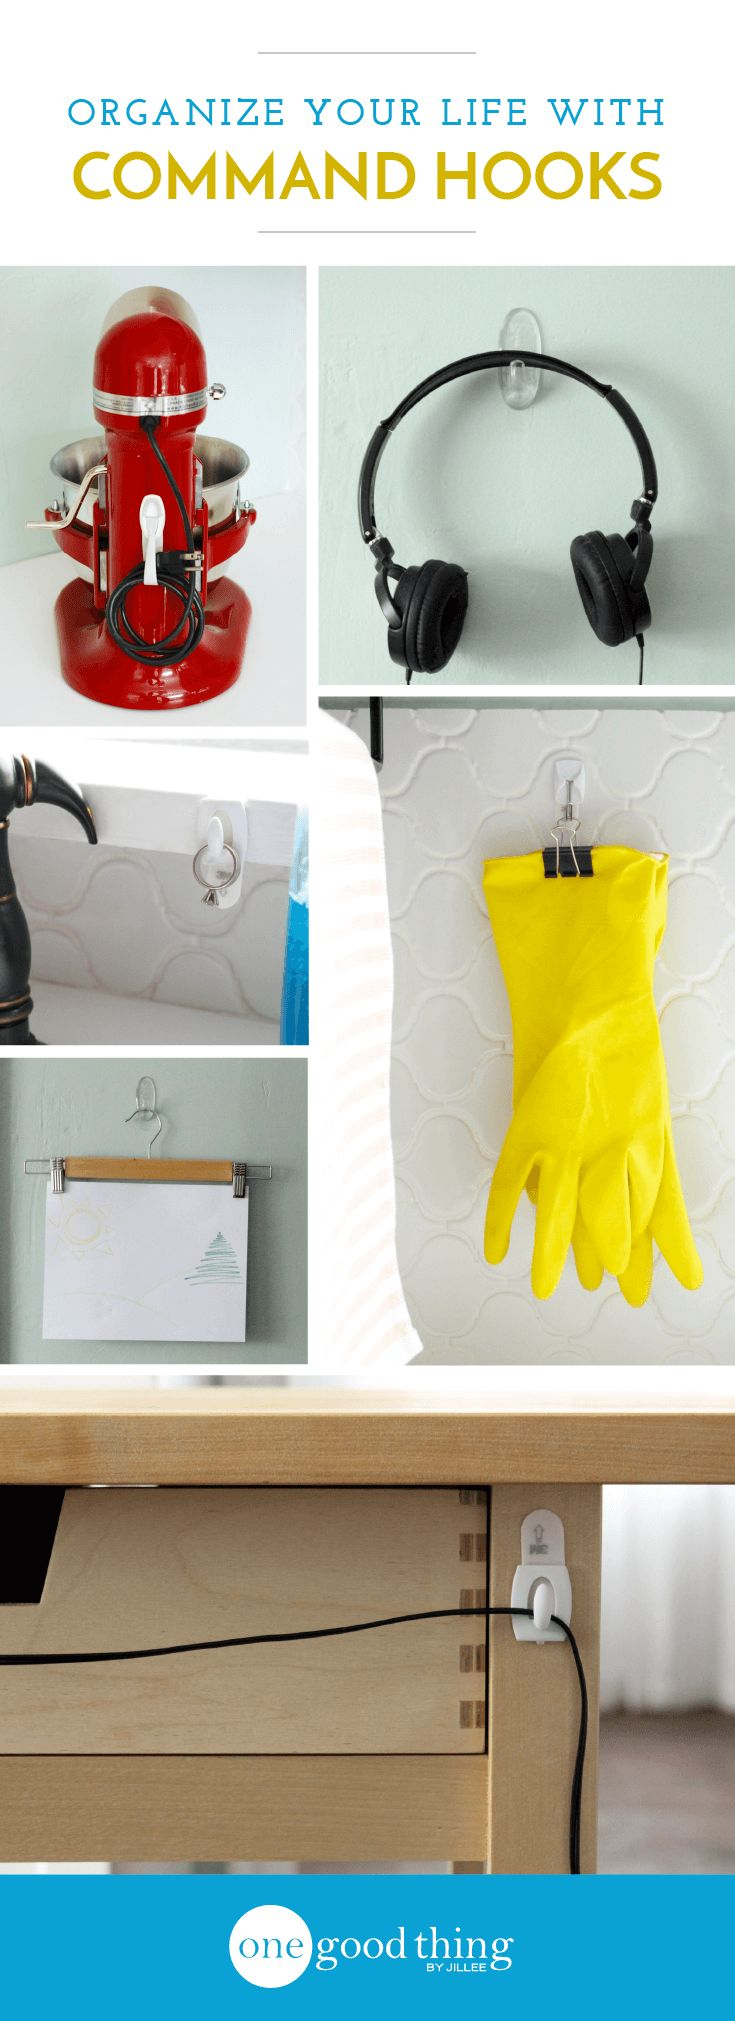 21 Ways To Organize Your Life With